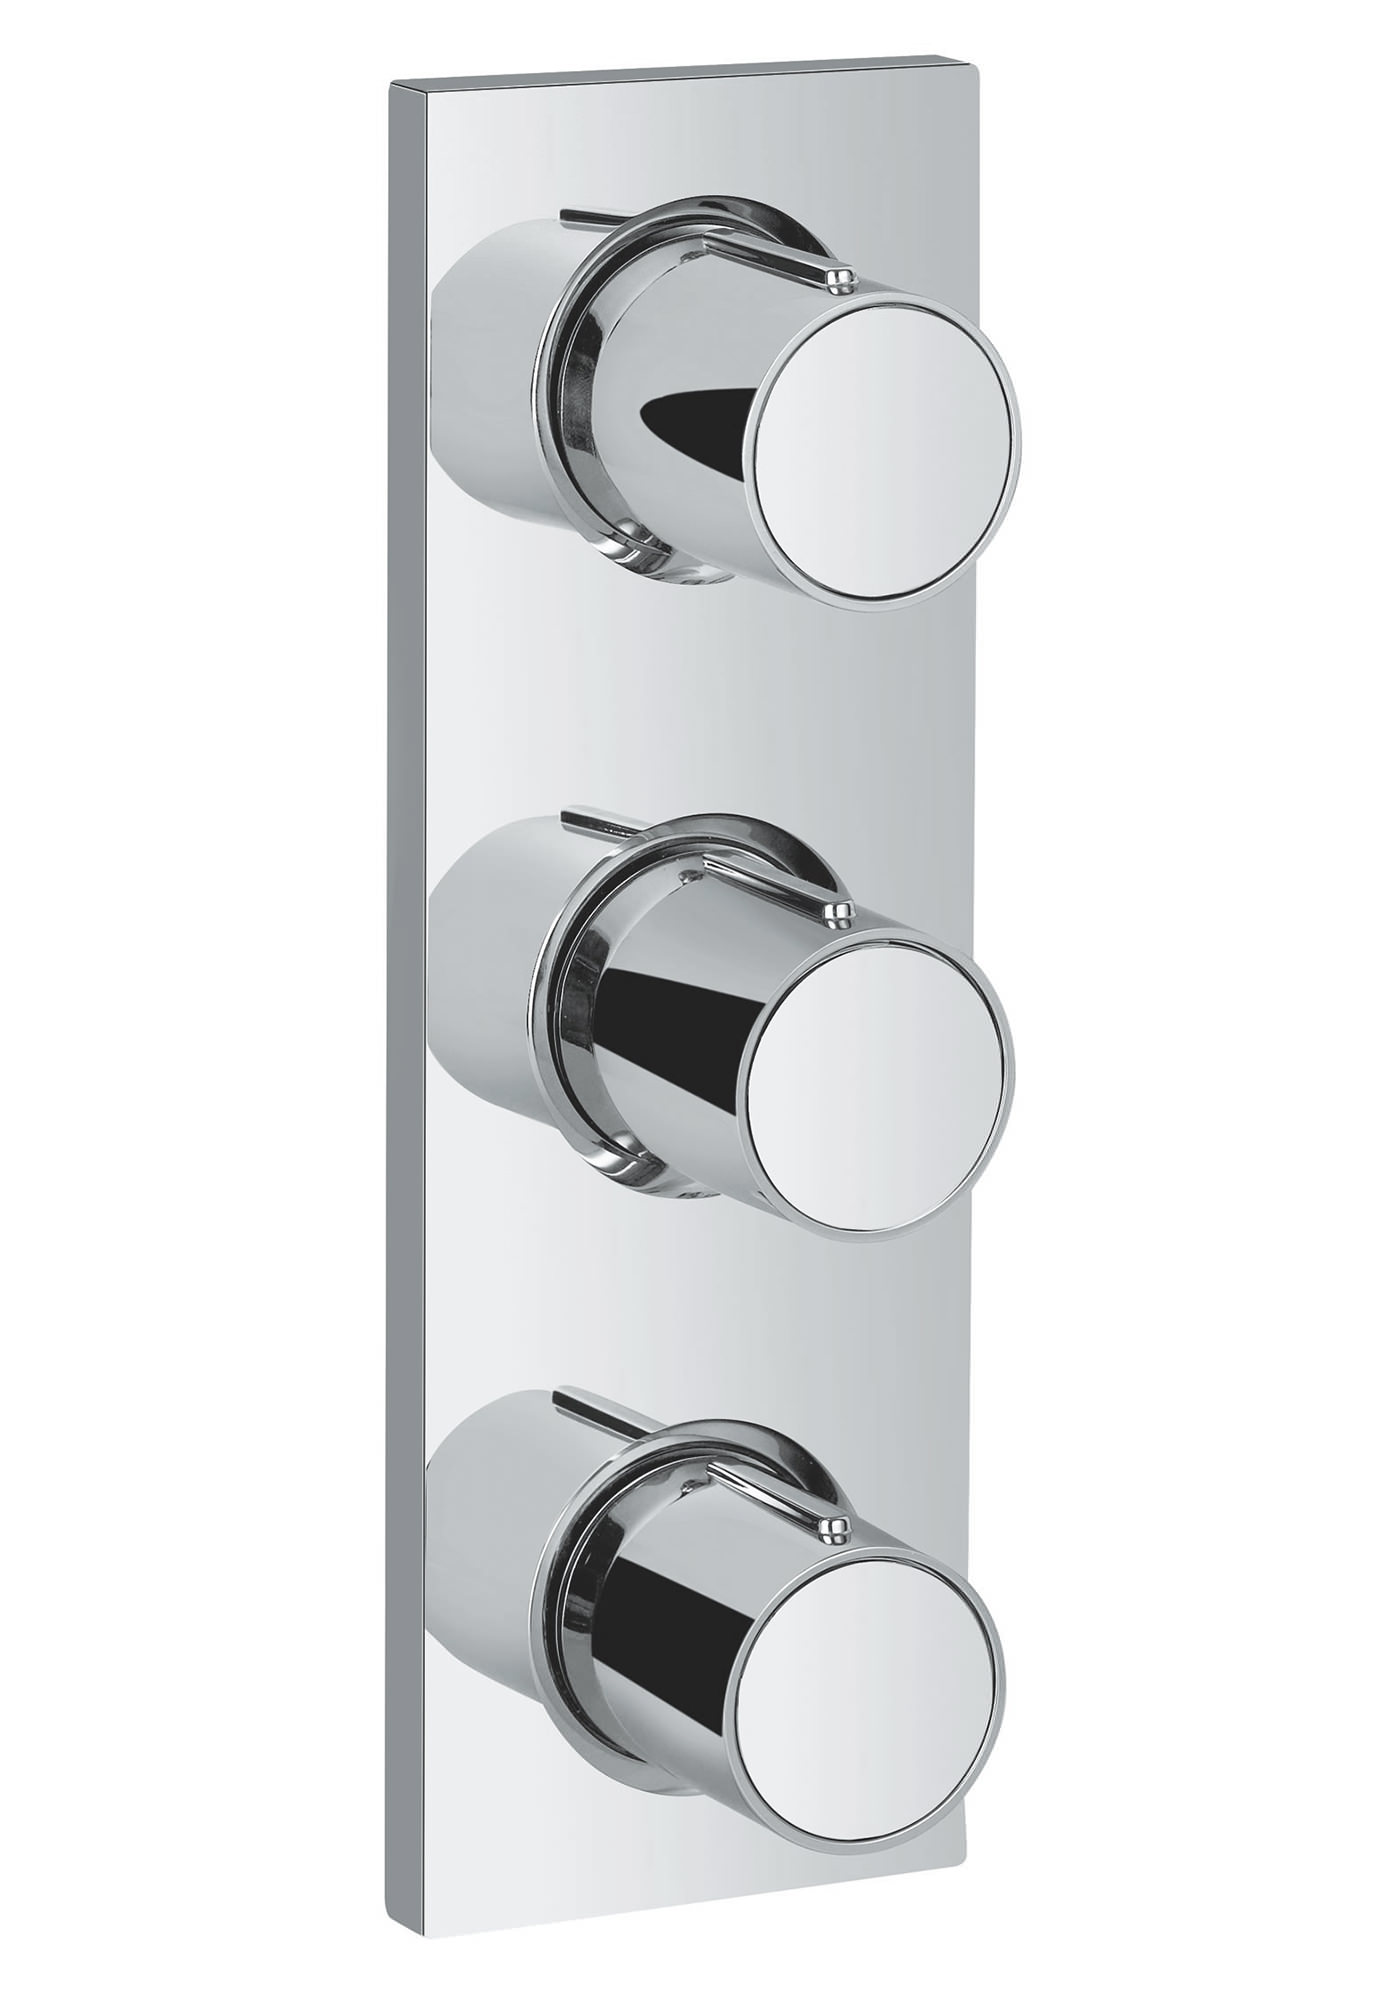 Grohe spa grohtherm f trim concealed shower valve with - Shower controls ...